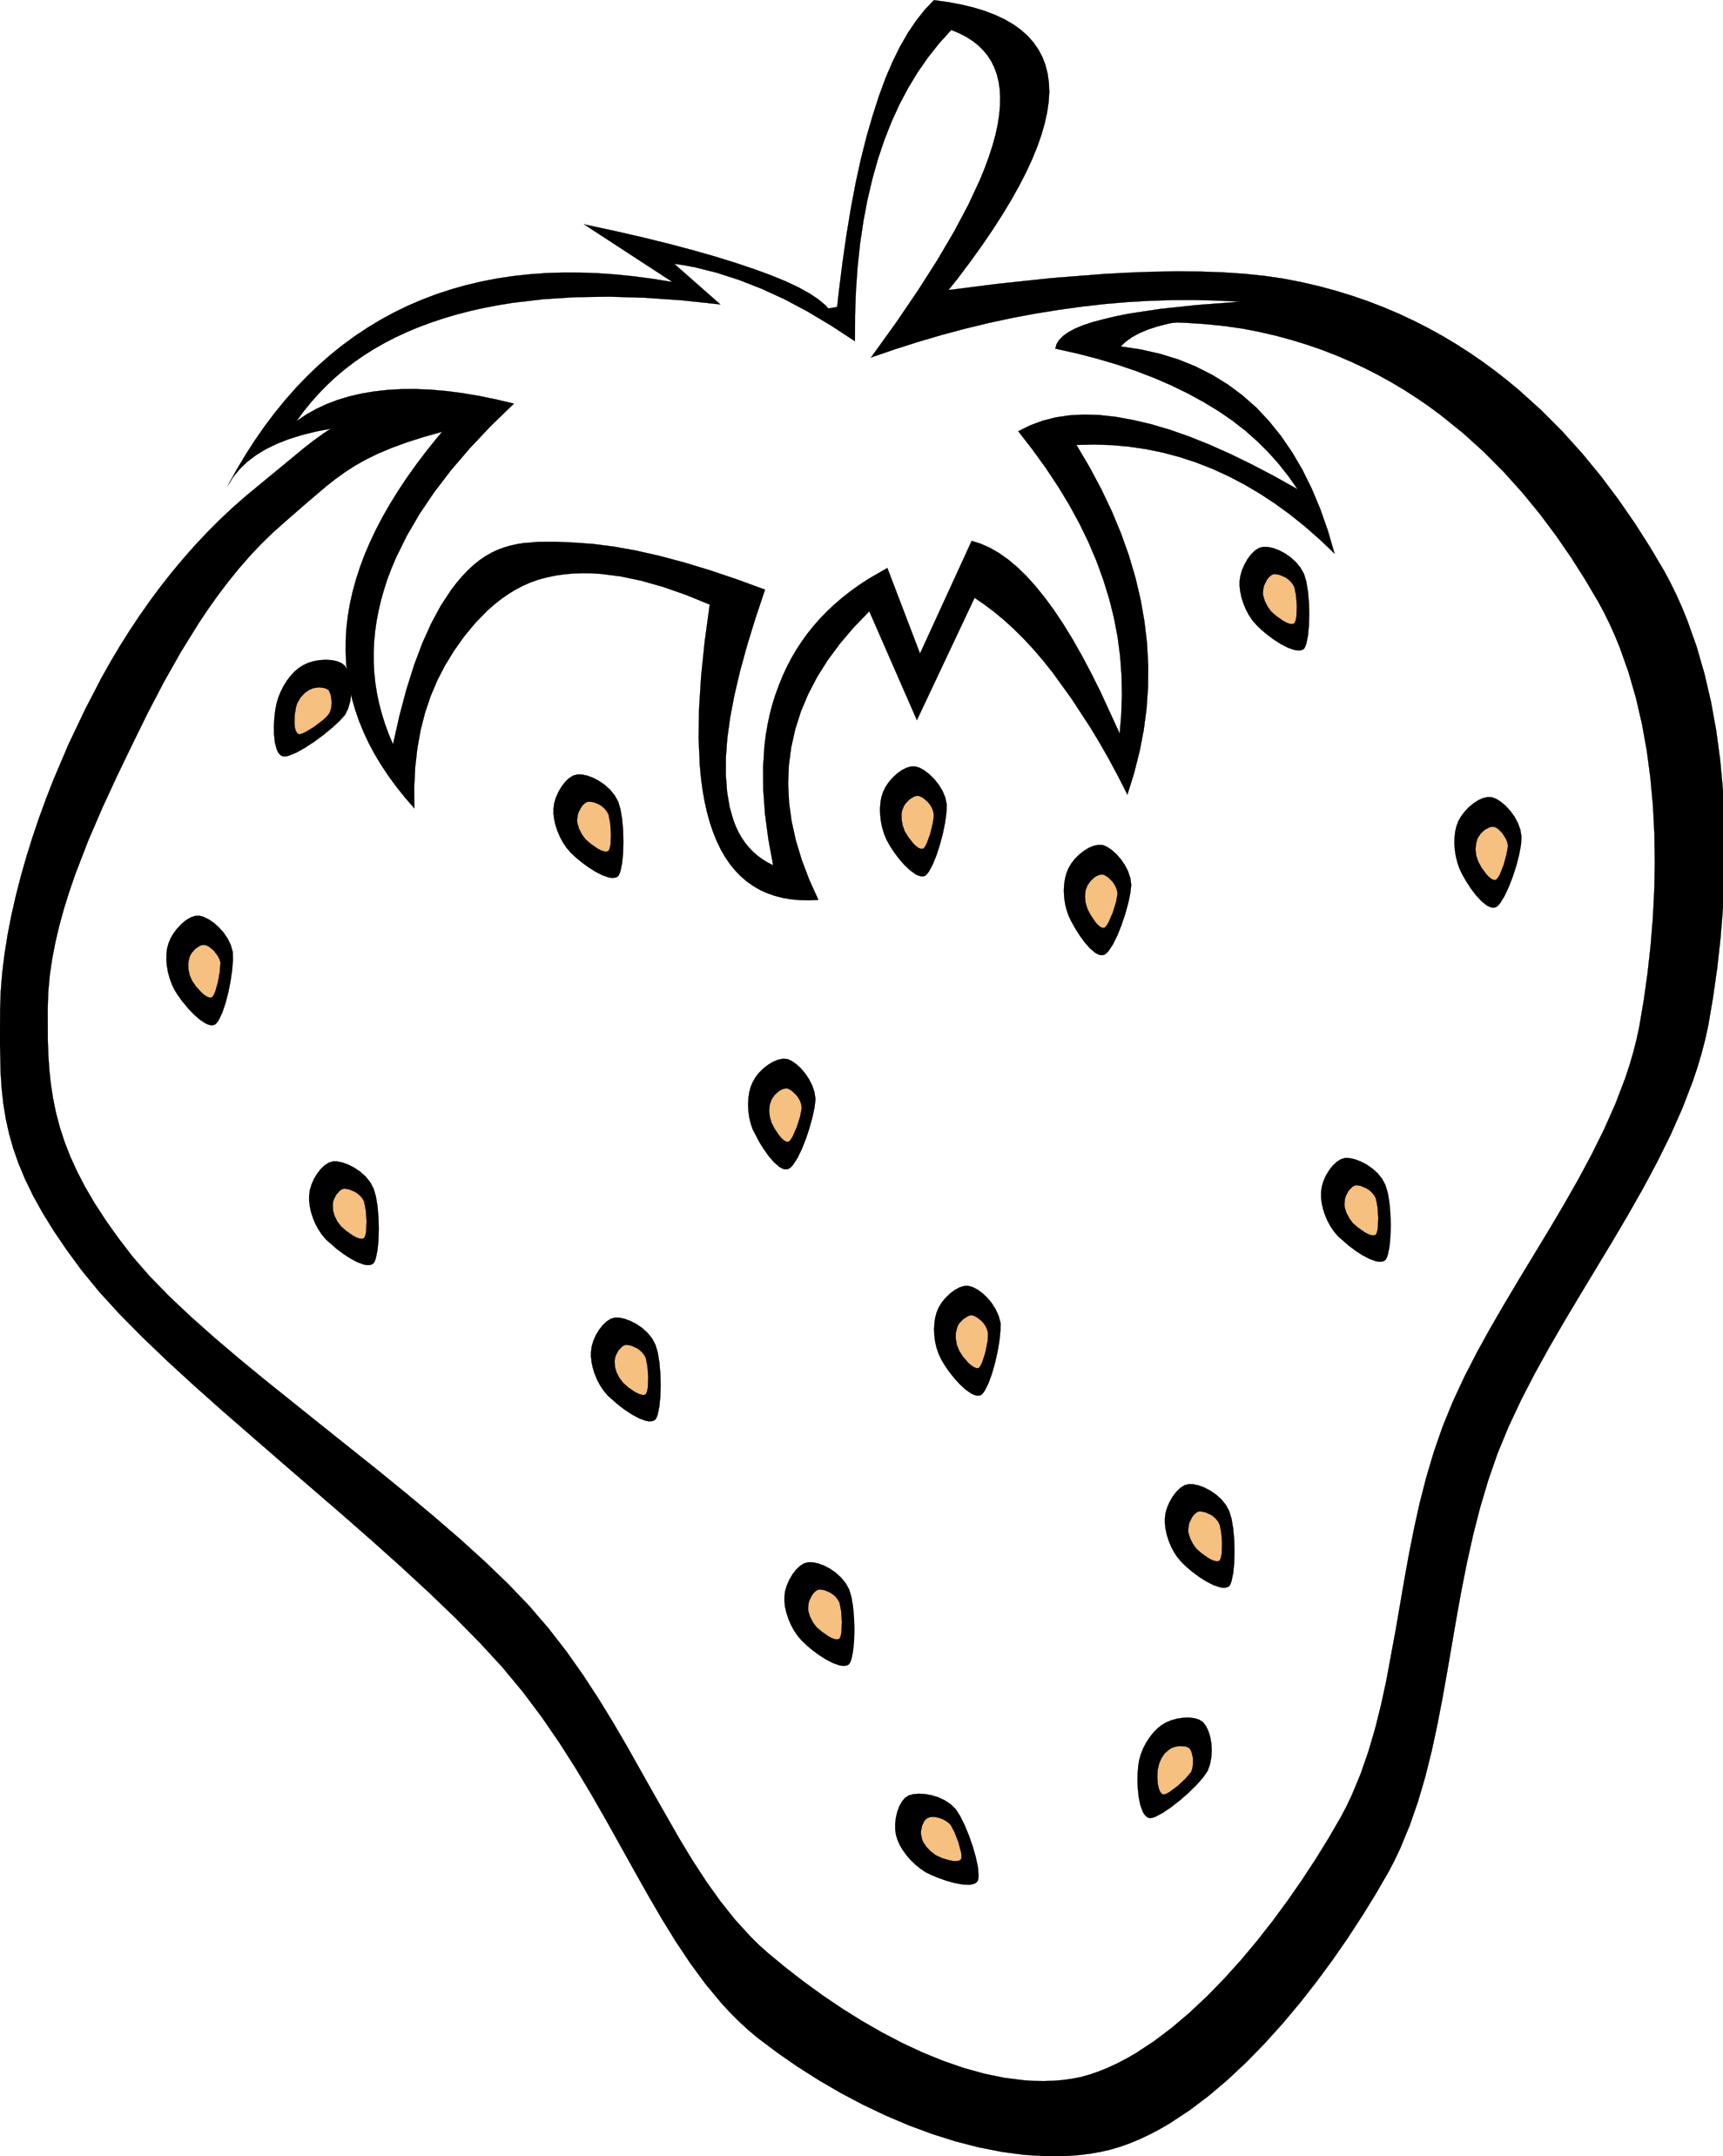 Cinderella black and white. Strawberries clipart milk carton